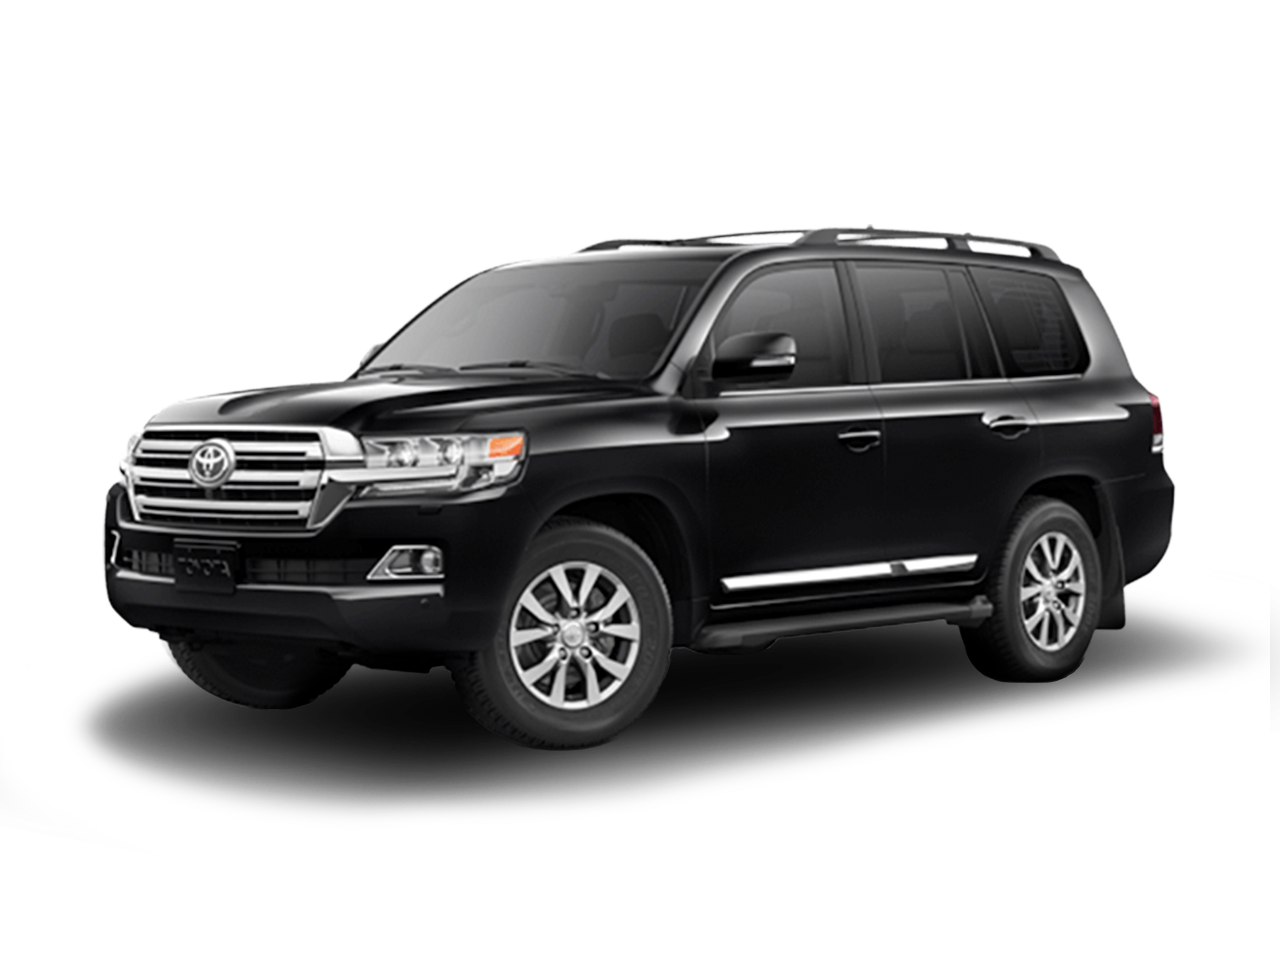 2017 Toyota Land Cruiser At Roseville Toyota Serving ...